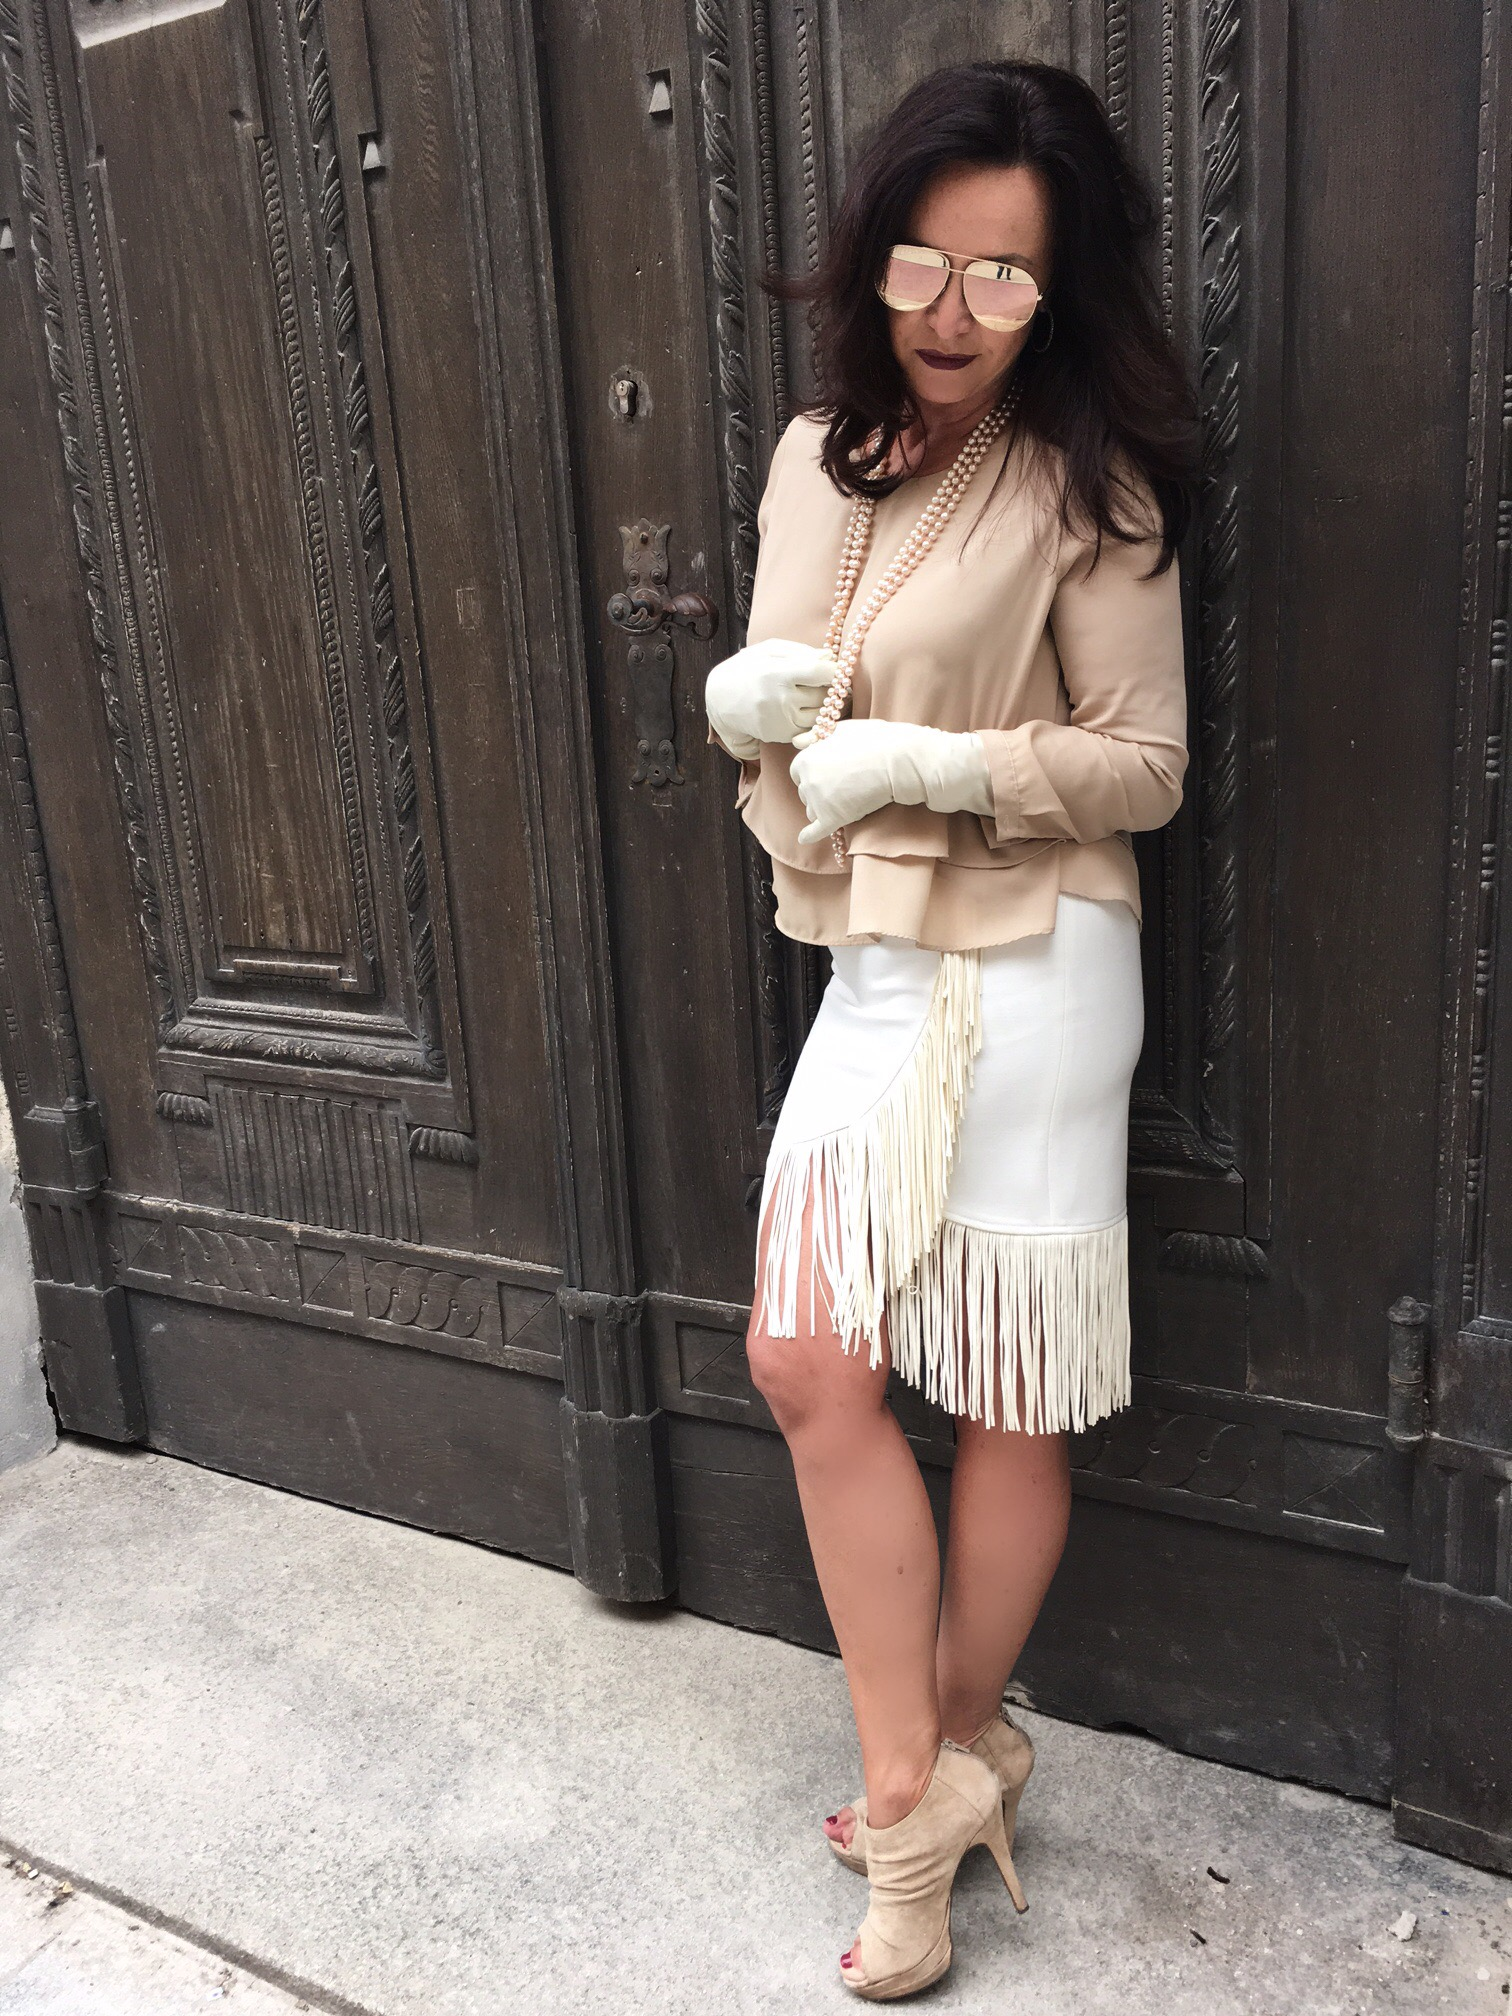 Maje skirt, zara top, dior eyewear